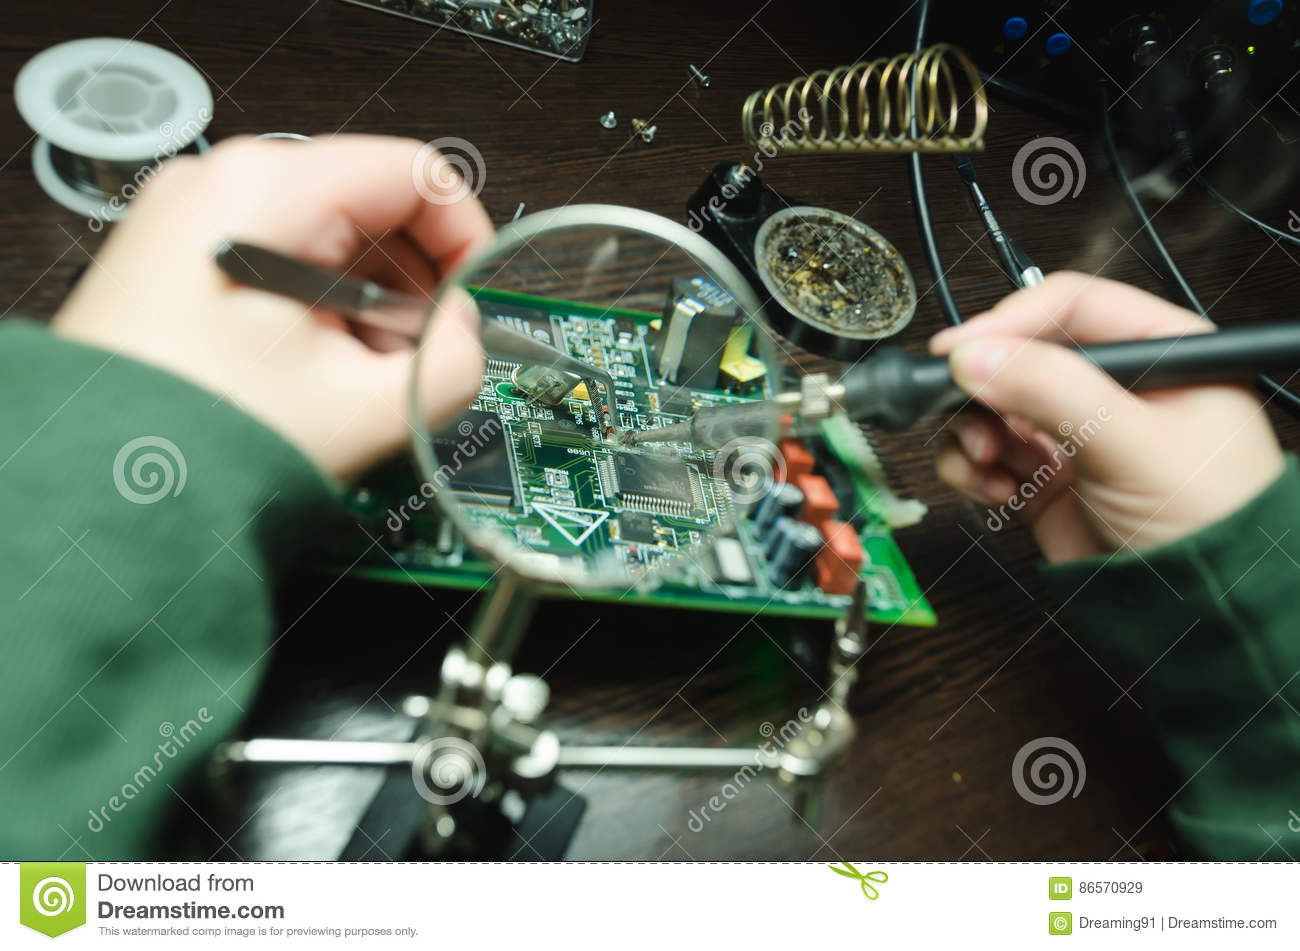 Men Repair With Magnifying Glass Electronic Board Stock Image Technician Repairing Circuit Soldering Iron Broken Disassembled Parts Through